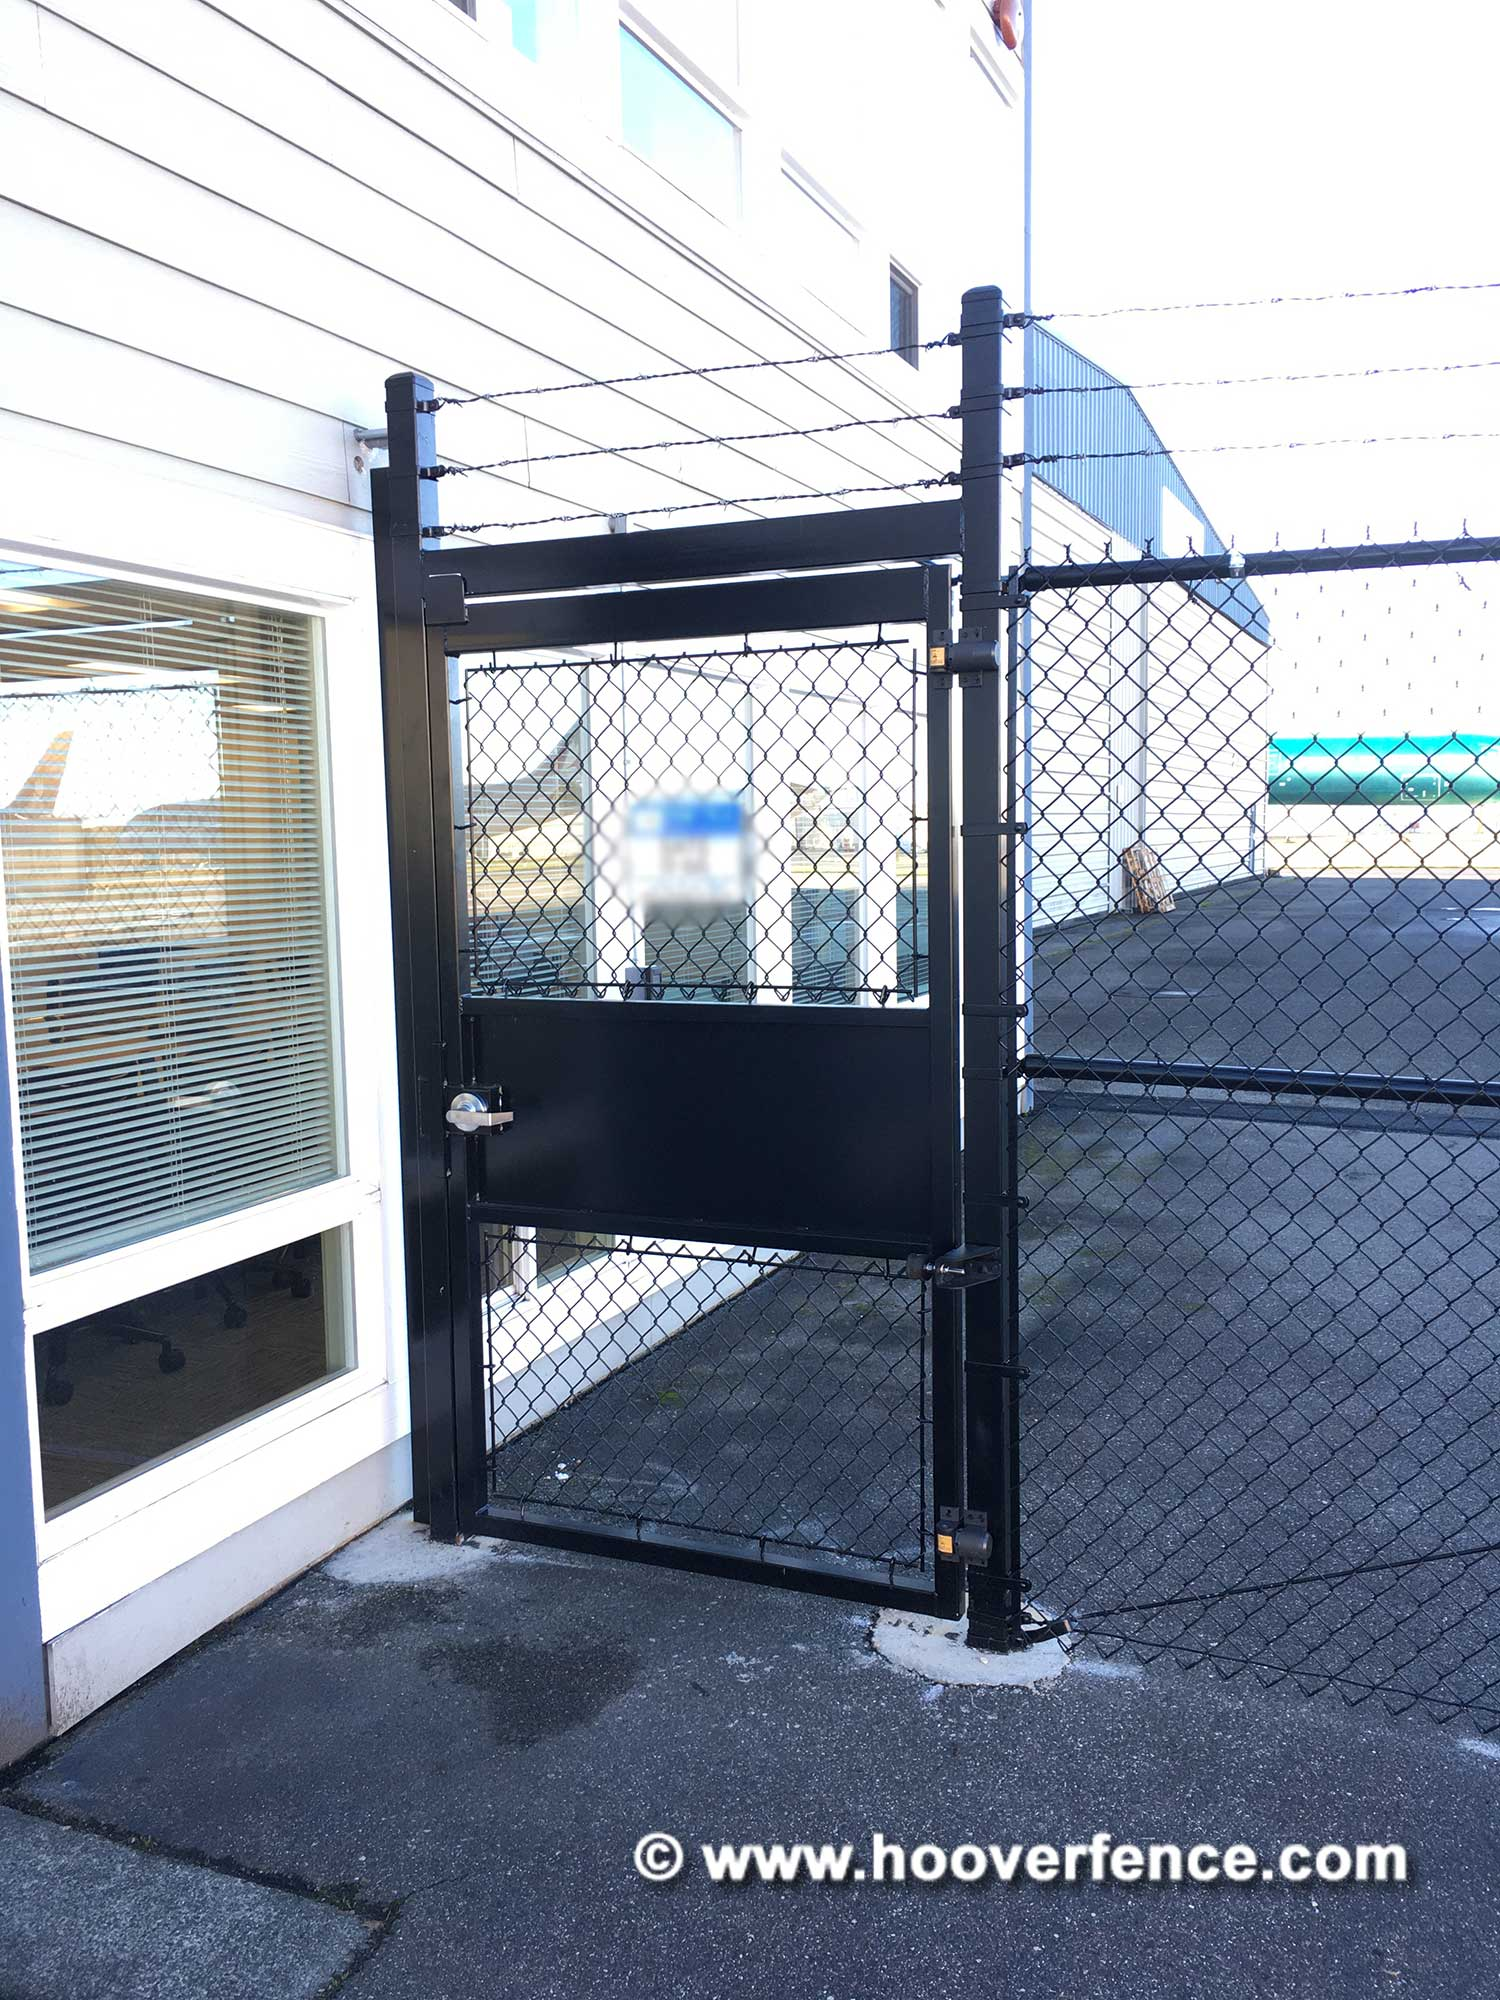 Customer Install - SureClose ReadyFit Hinge and Closer Installed on Black Chain Link Fence Gate with 7403 Gate Stop